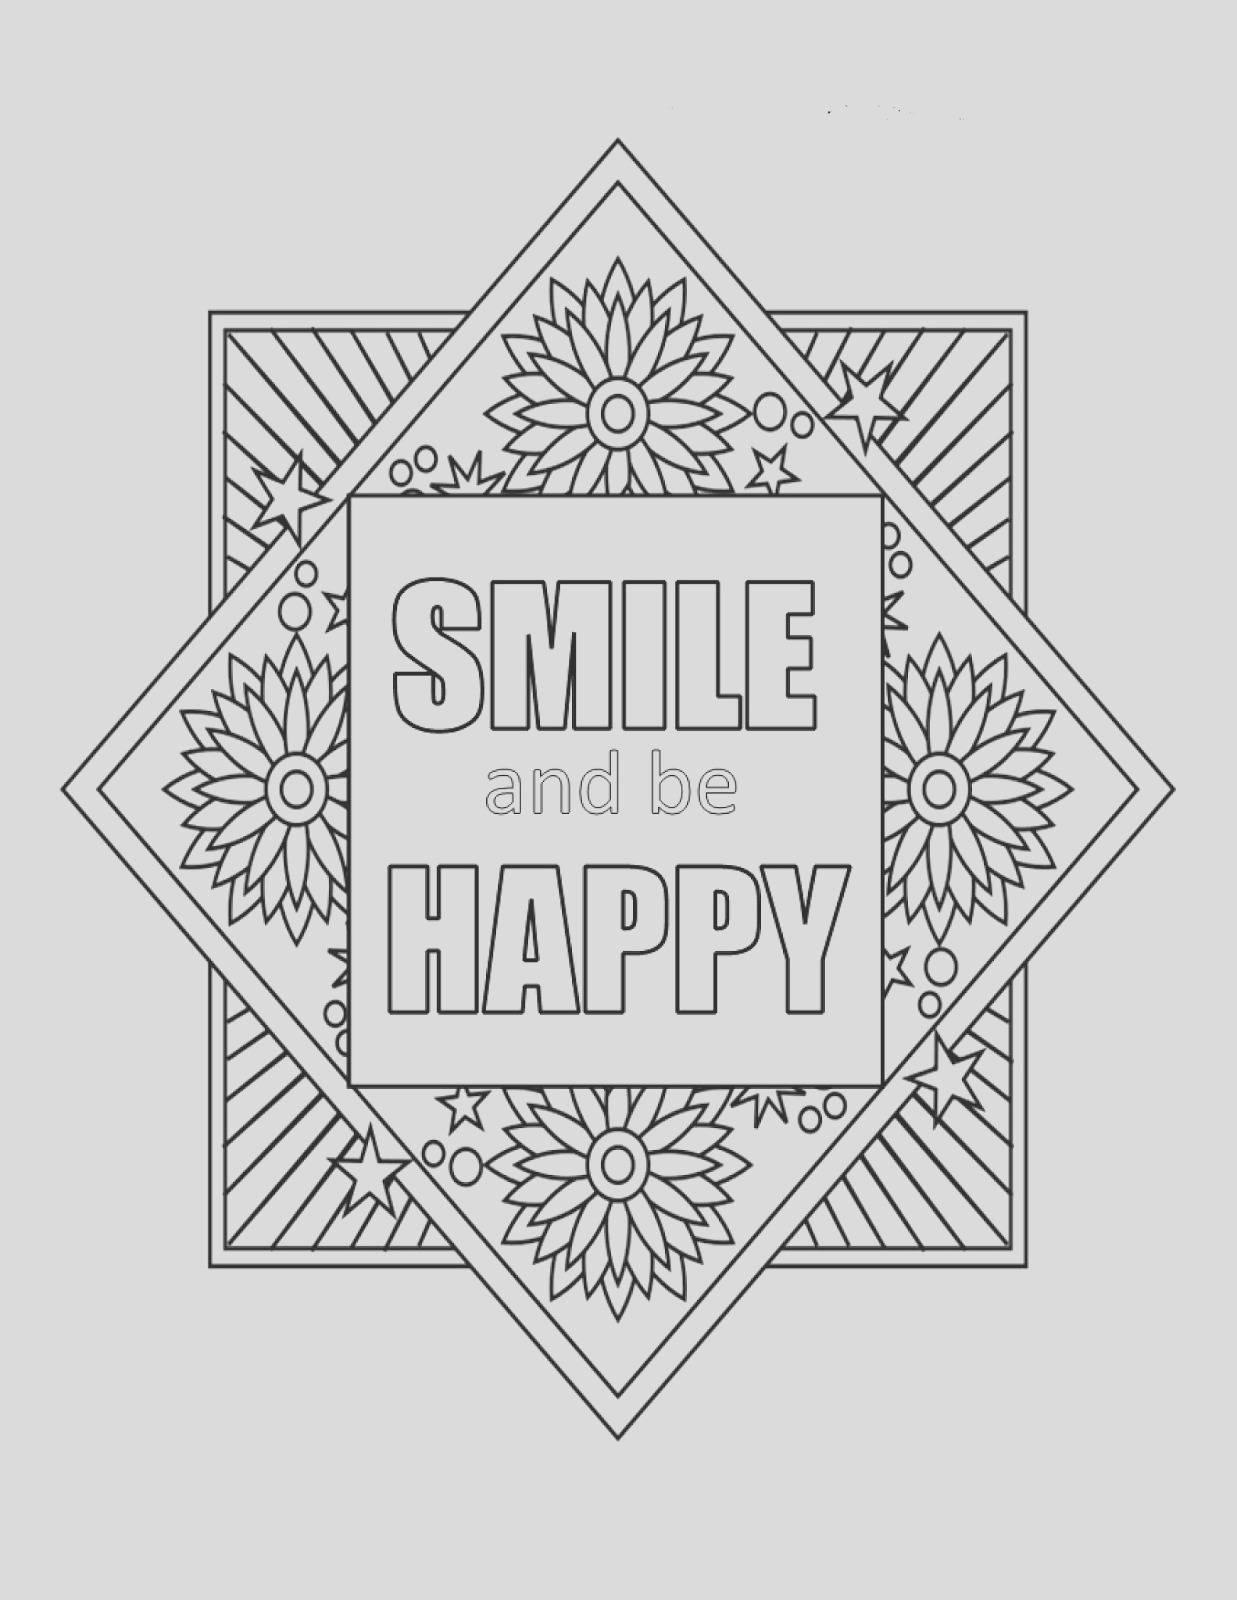 free inspirational quote coloring page